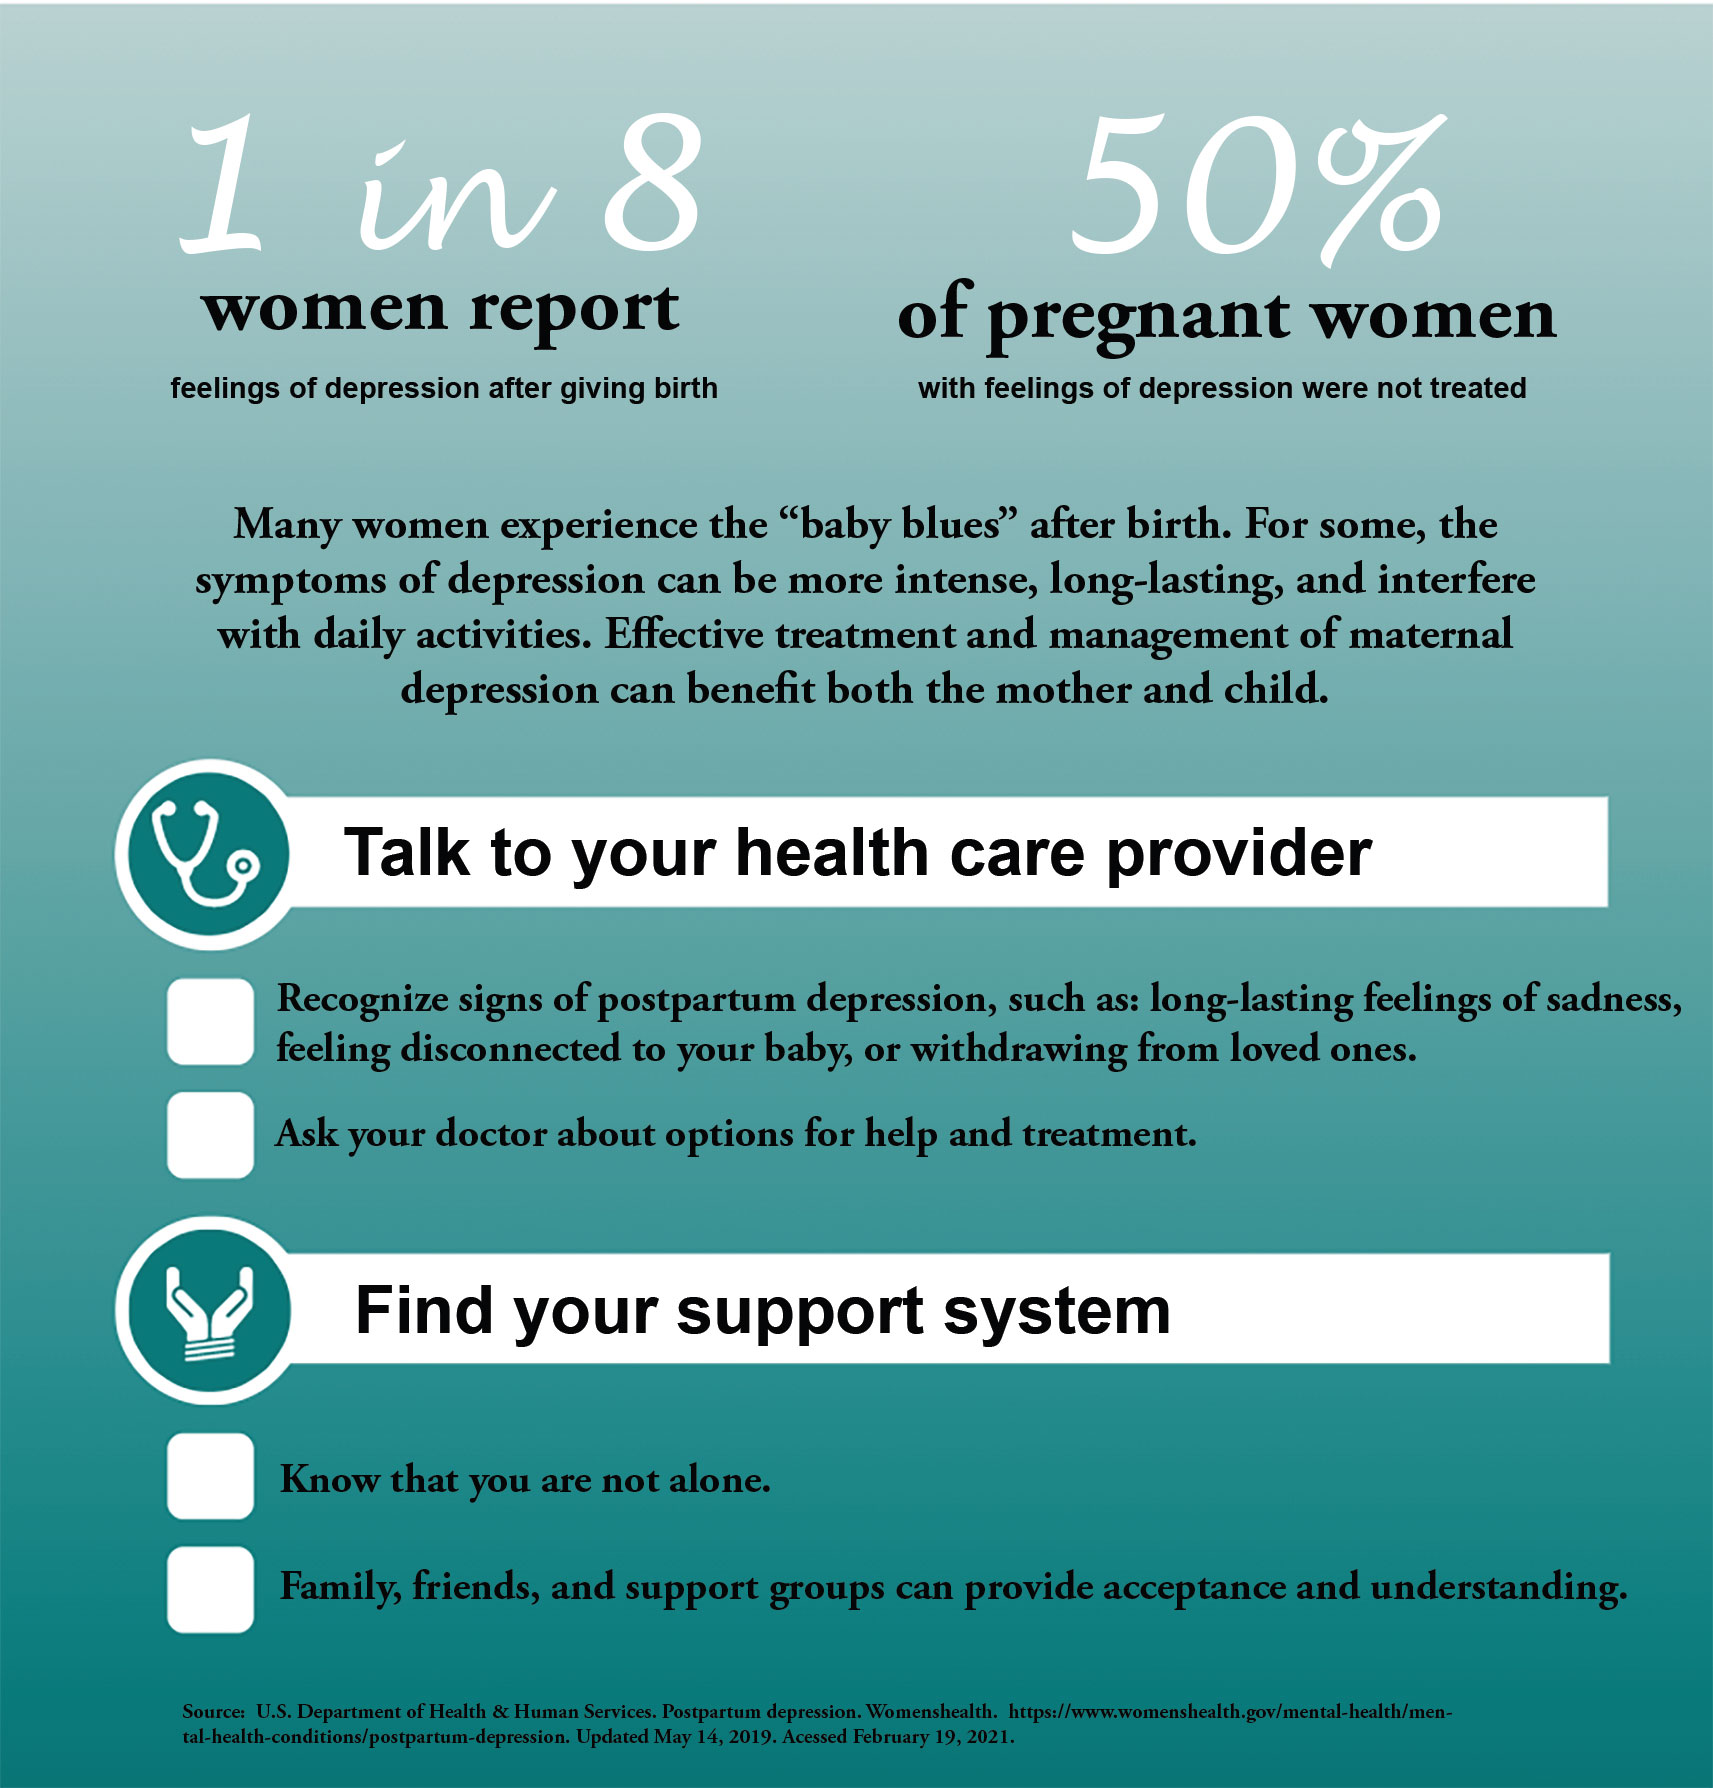 1 in 8 women report feelings of depression after giving birth. 50% of pregnant women with feelings of depression were not treated. Talk to your health care provider. Find your support system.